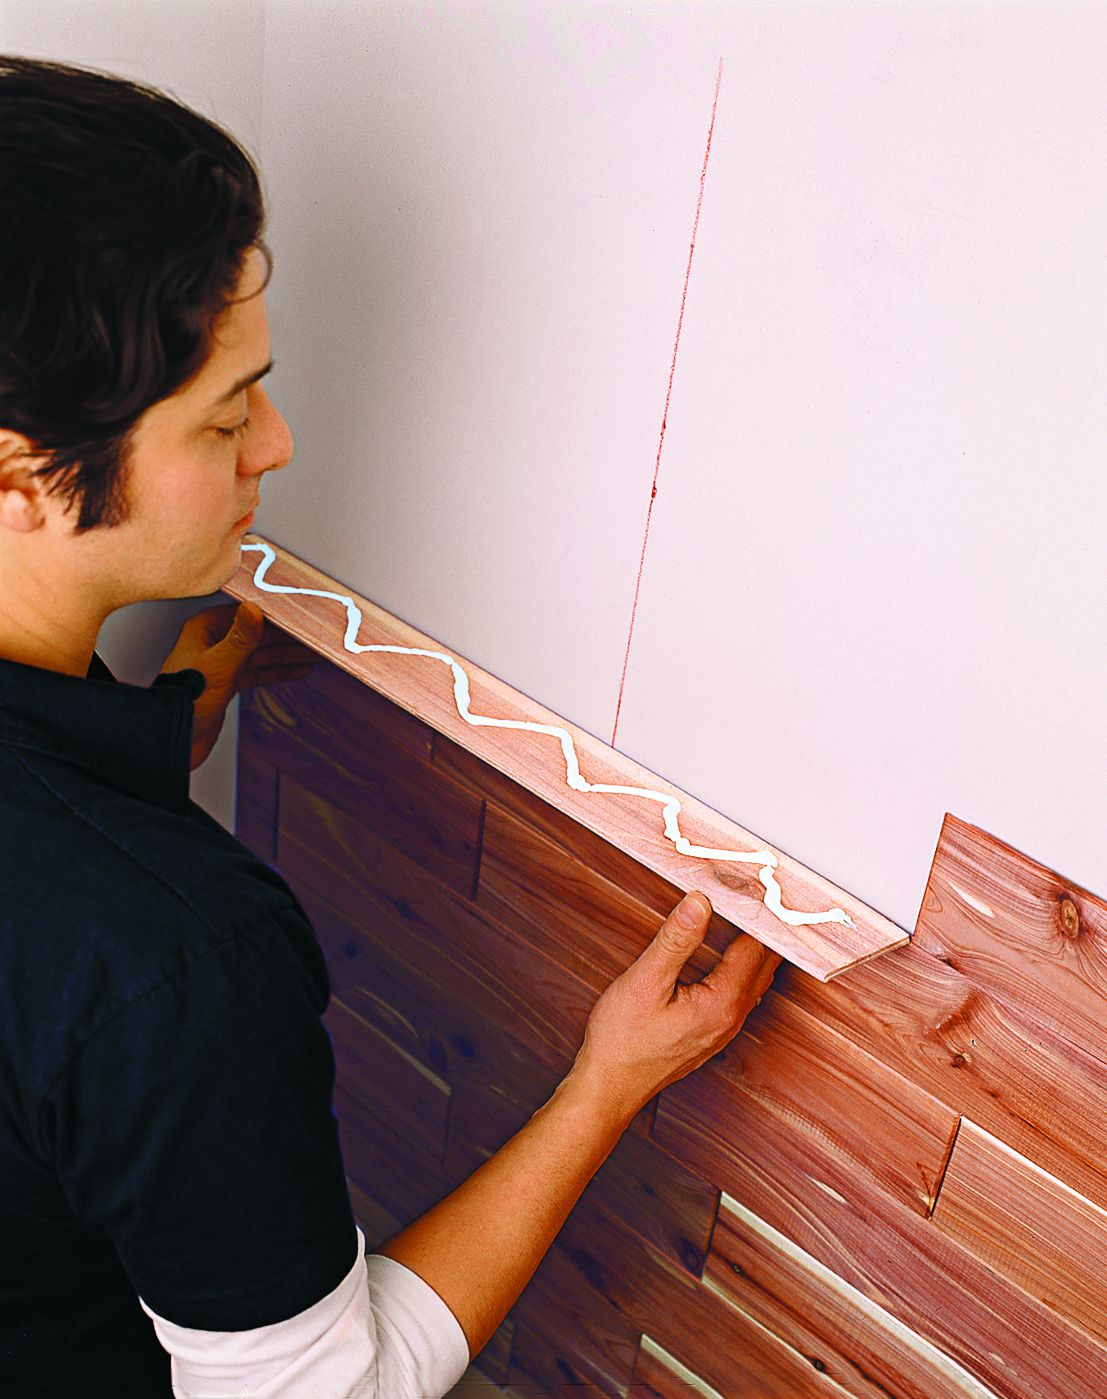 Person holding a cedar board up against the closet wall.